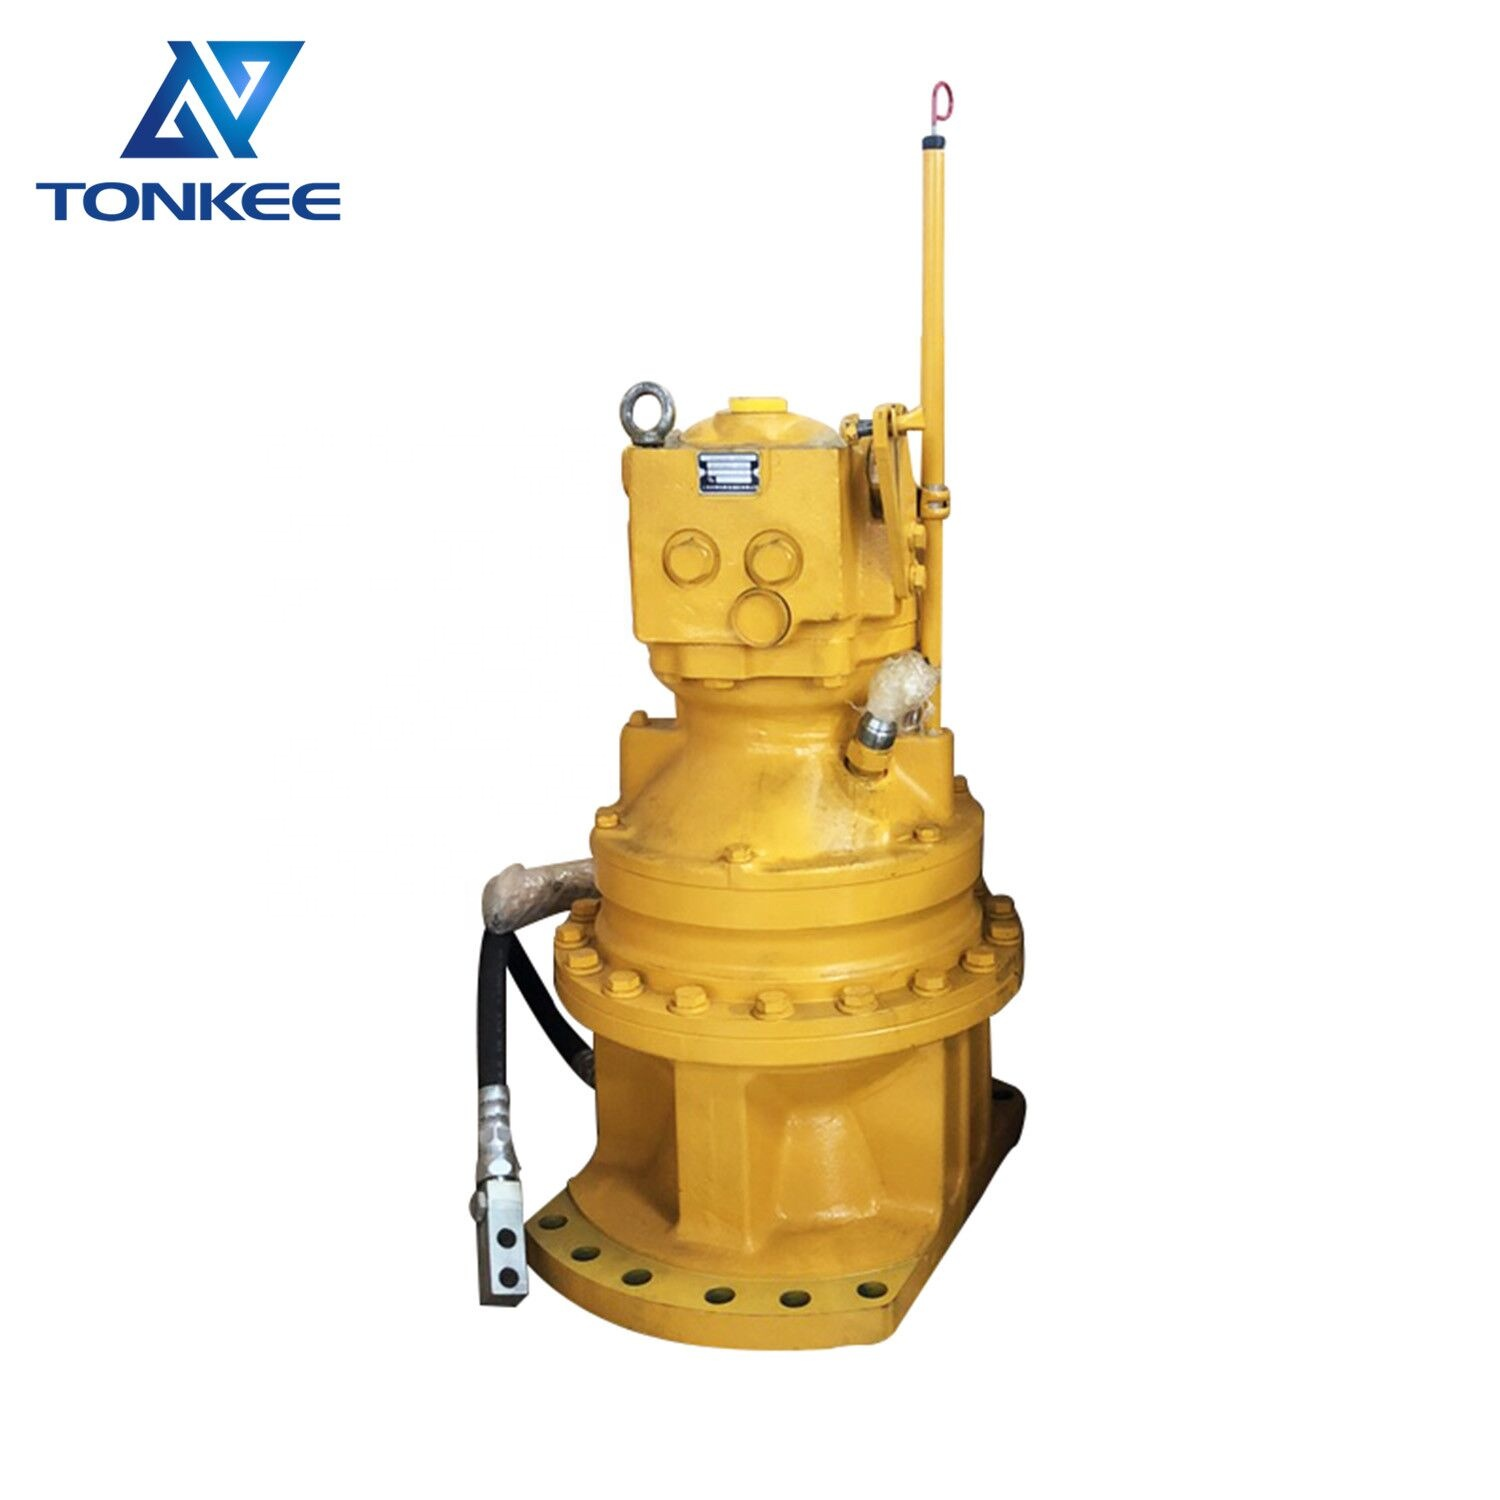 20Y-26-00232 swing machinery assembly PC200-8 PC200LC-8MO PC210-10 excavator swing motor with gearbox (6).jpg